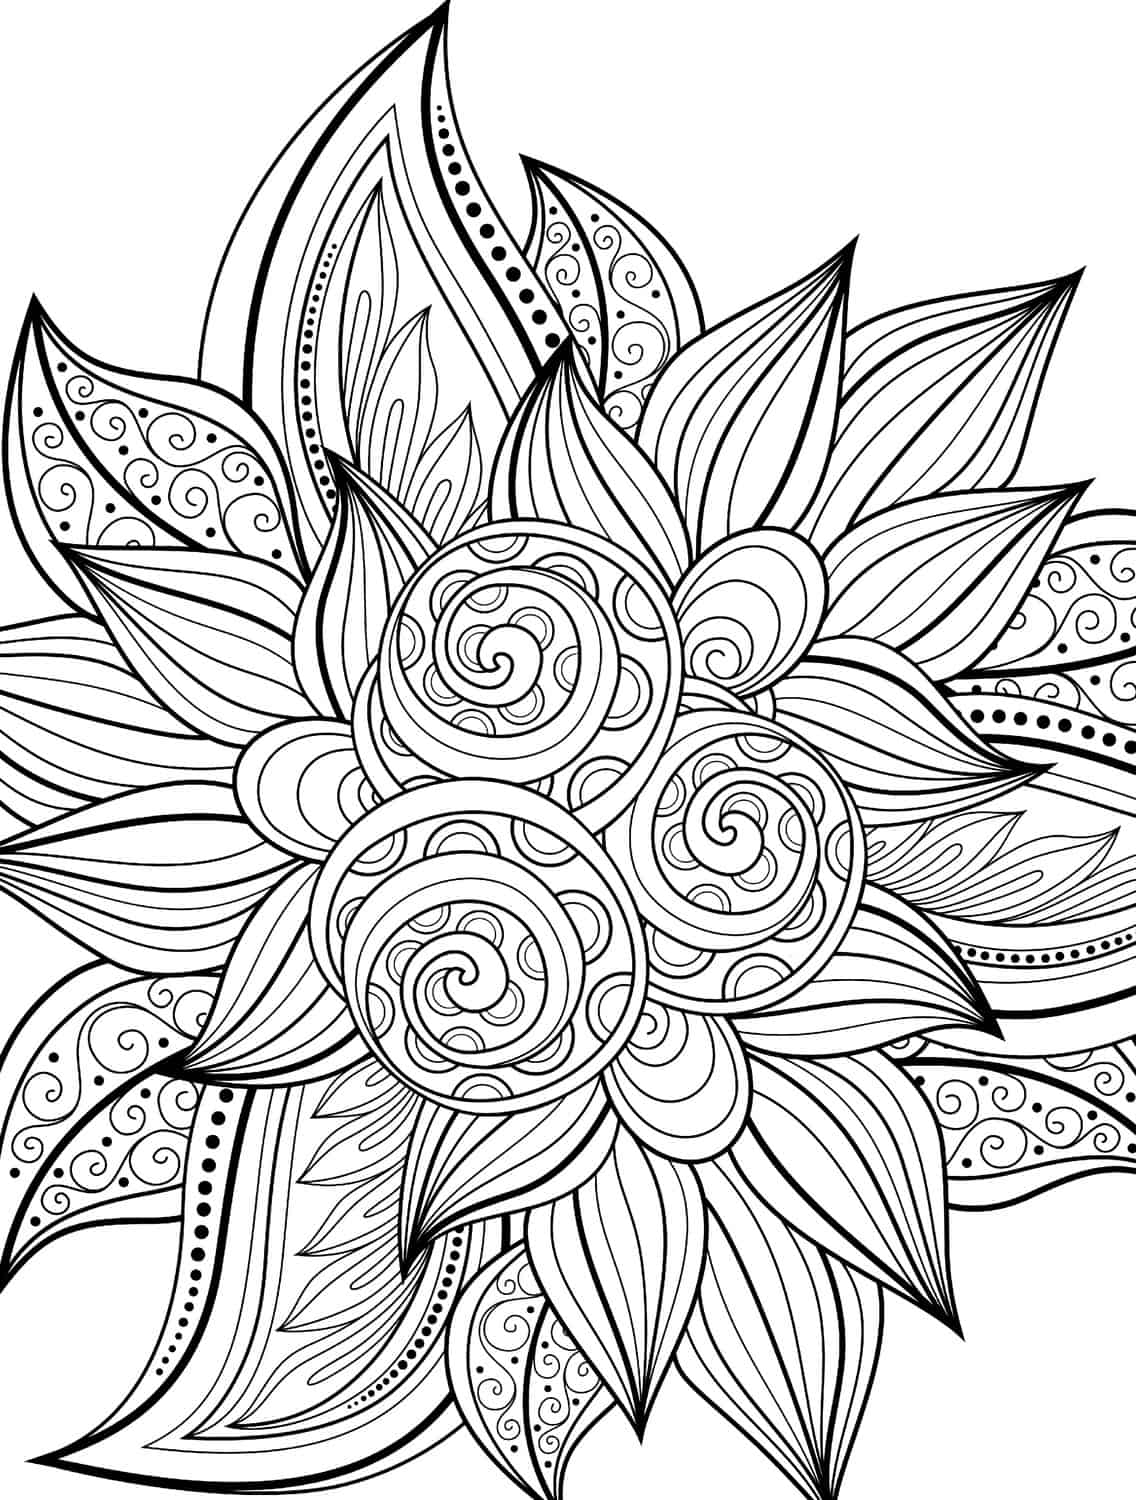 coloring prints for adults download printable adult coloring page digital by adults coloring prints for